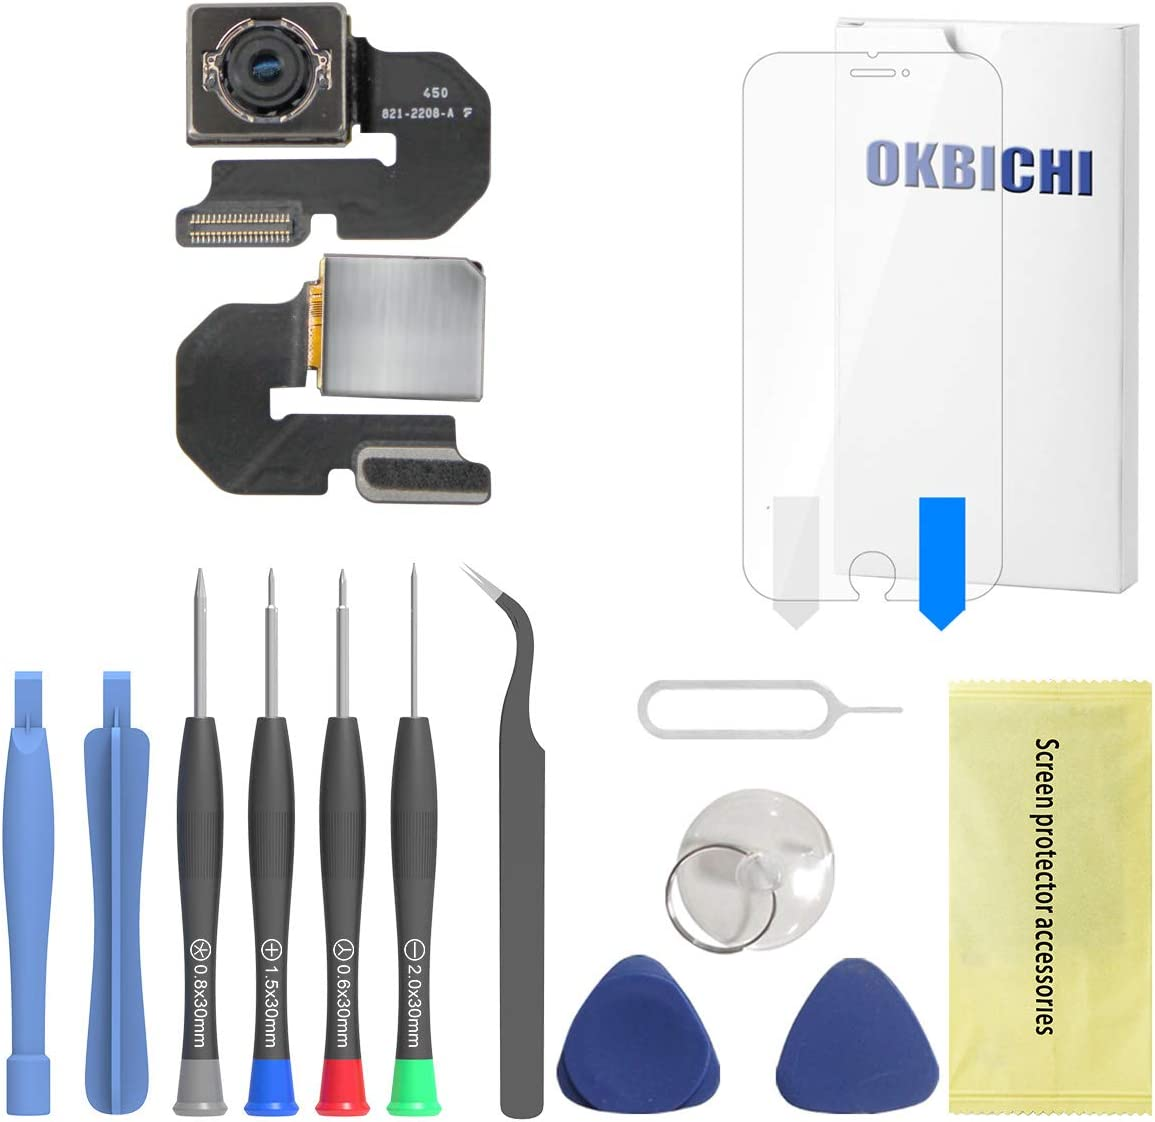 OKBICHI Rear Camera for iPhone 6 Plus (All Carriers) Back Camera Module Flex Cable Replacement - Repair Tools with Screen Protector